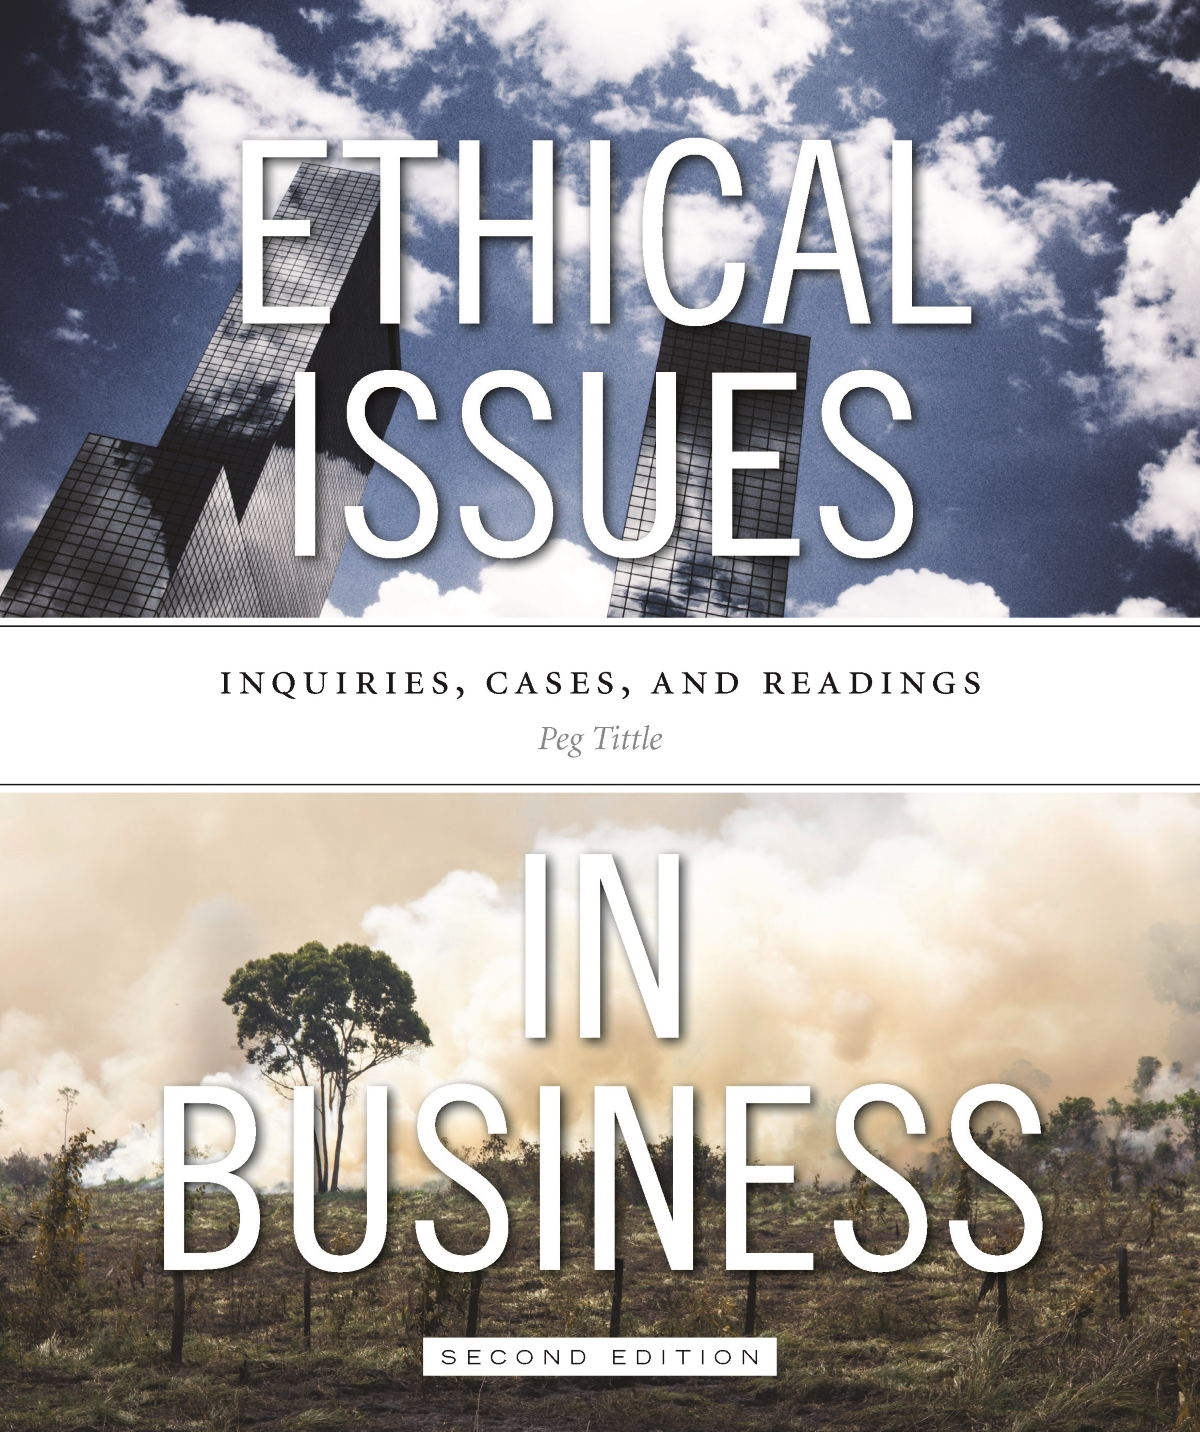 ethical-issues-in-business-2nd-edition